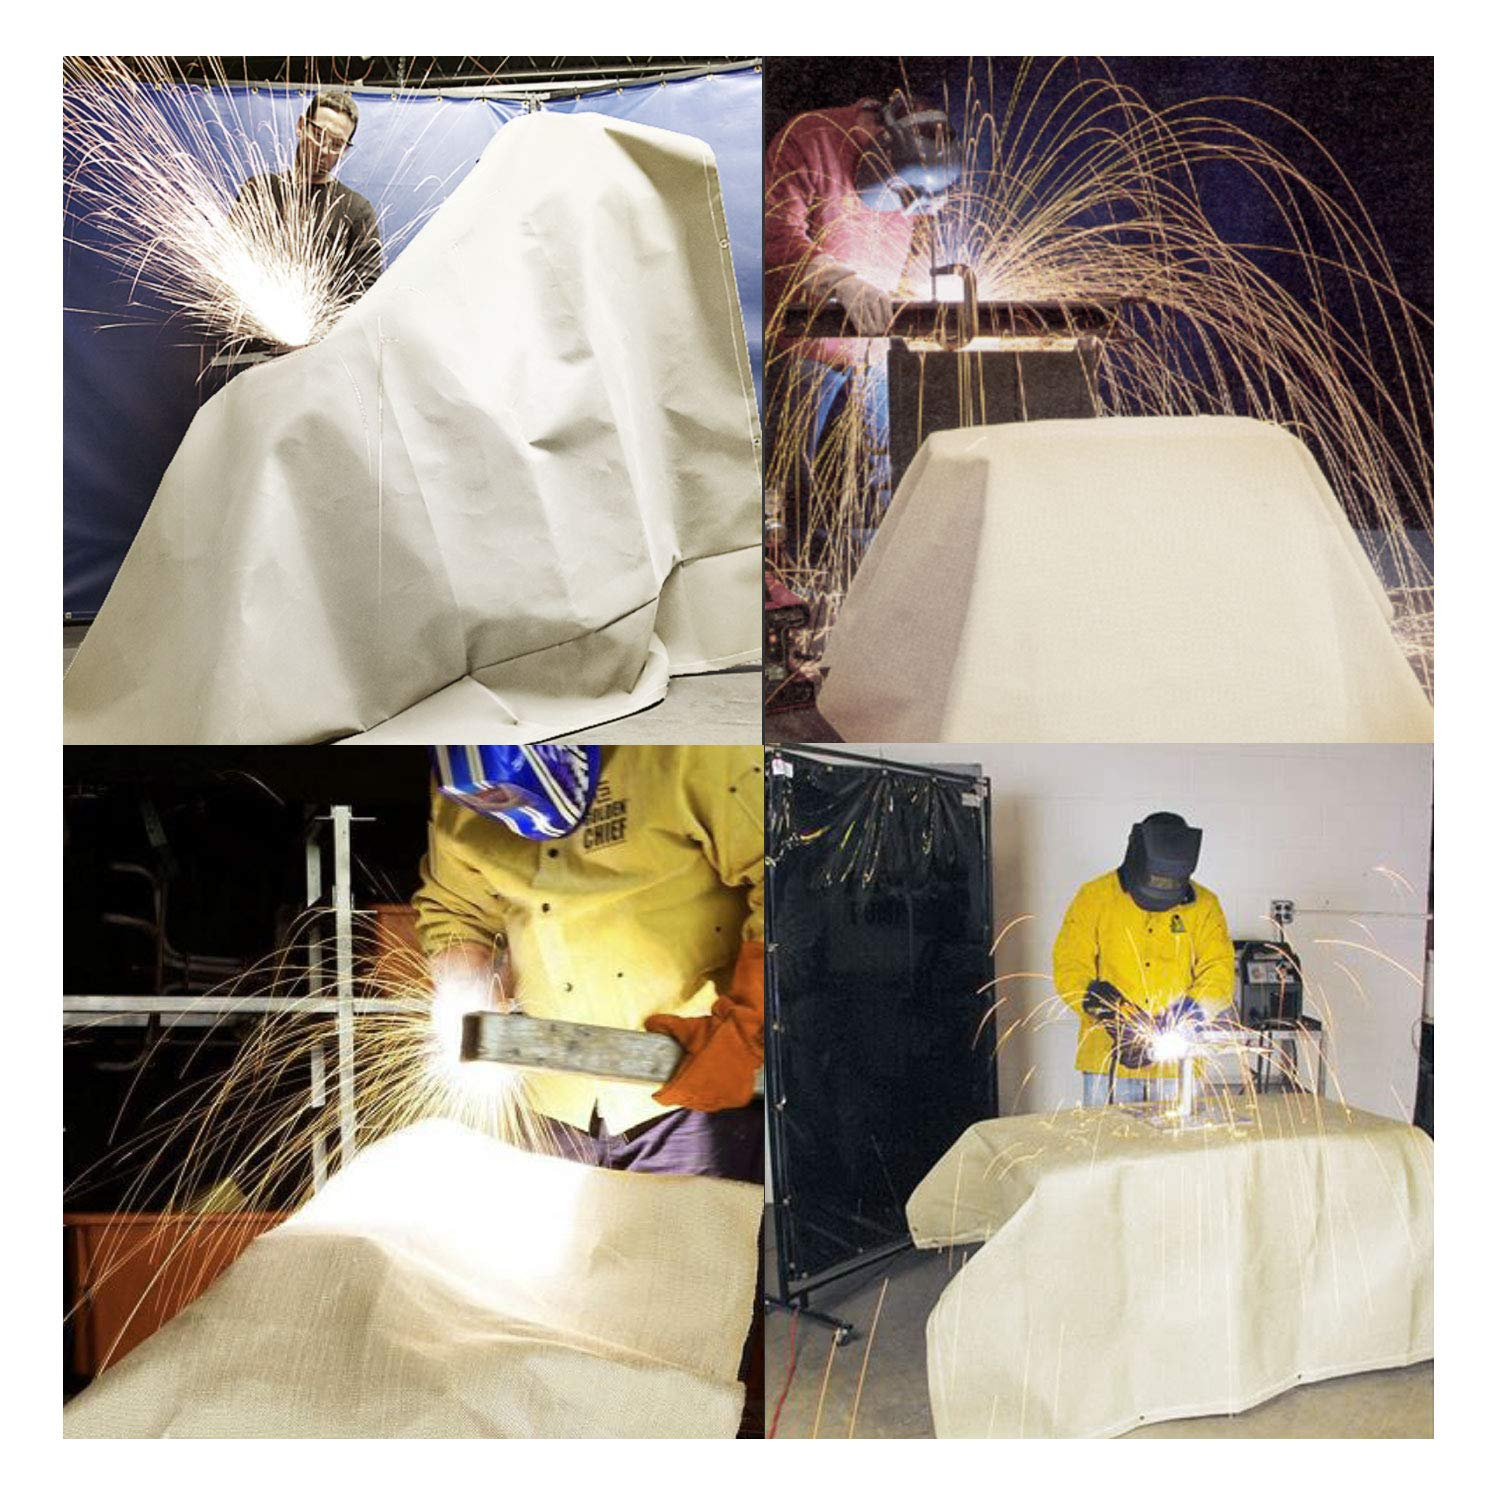 Welding Blanket Heavy Duty Fiberglass Fire Blanket Protect Work Area from Sparks 60 x 40 inches